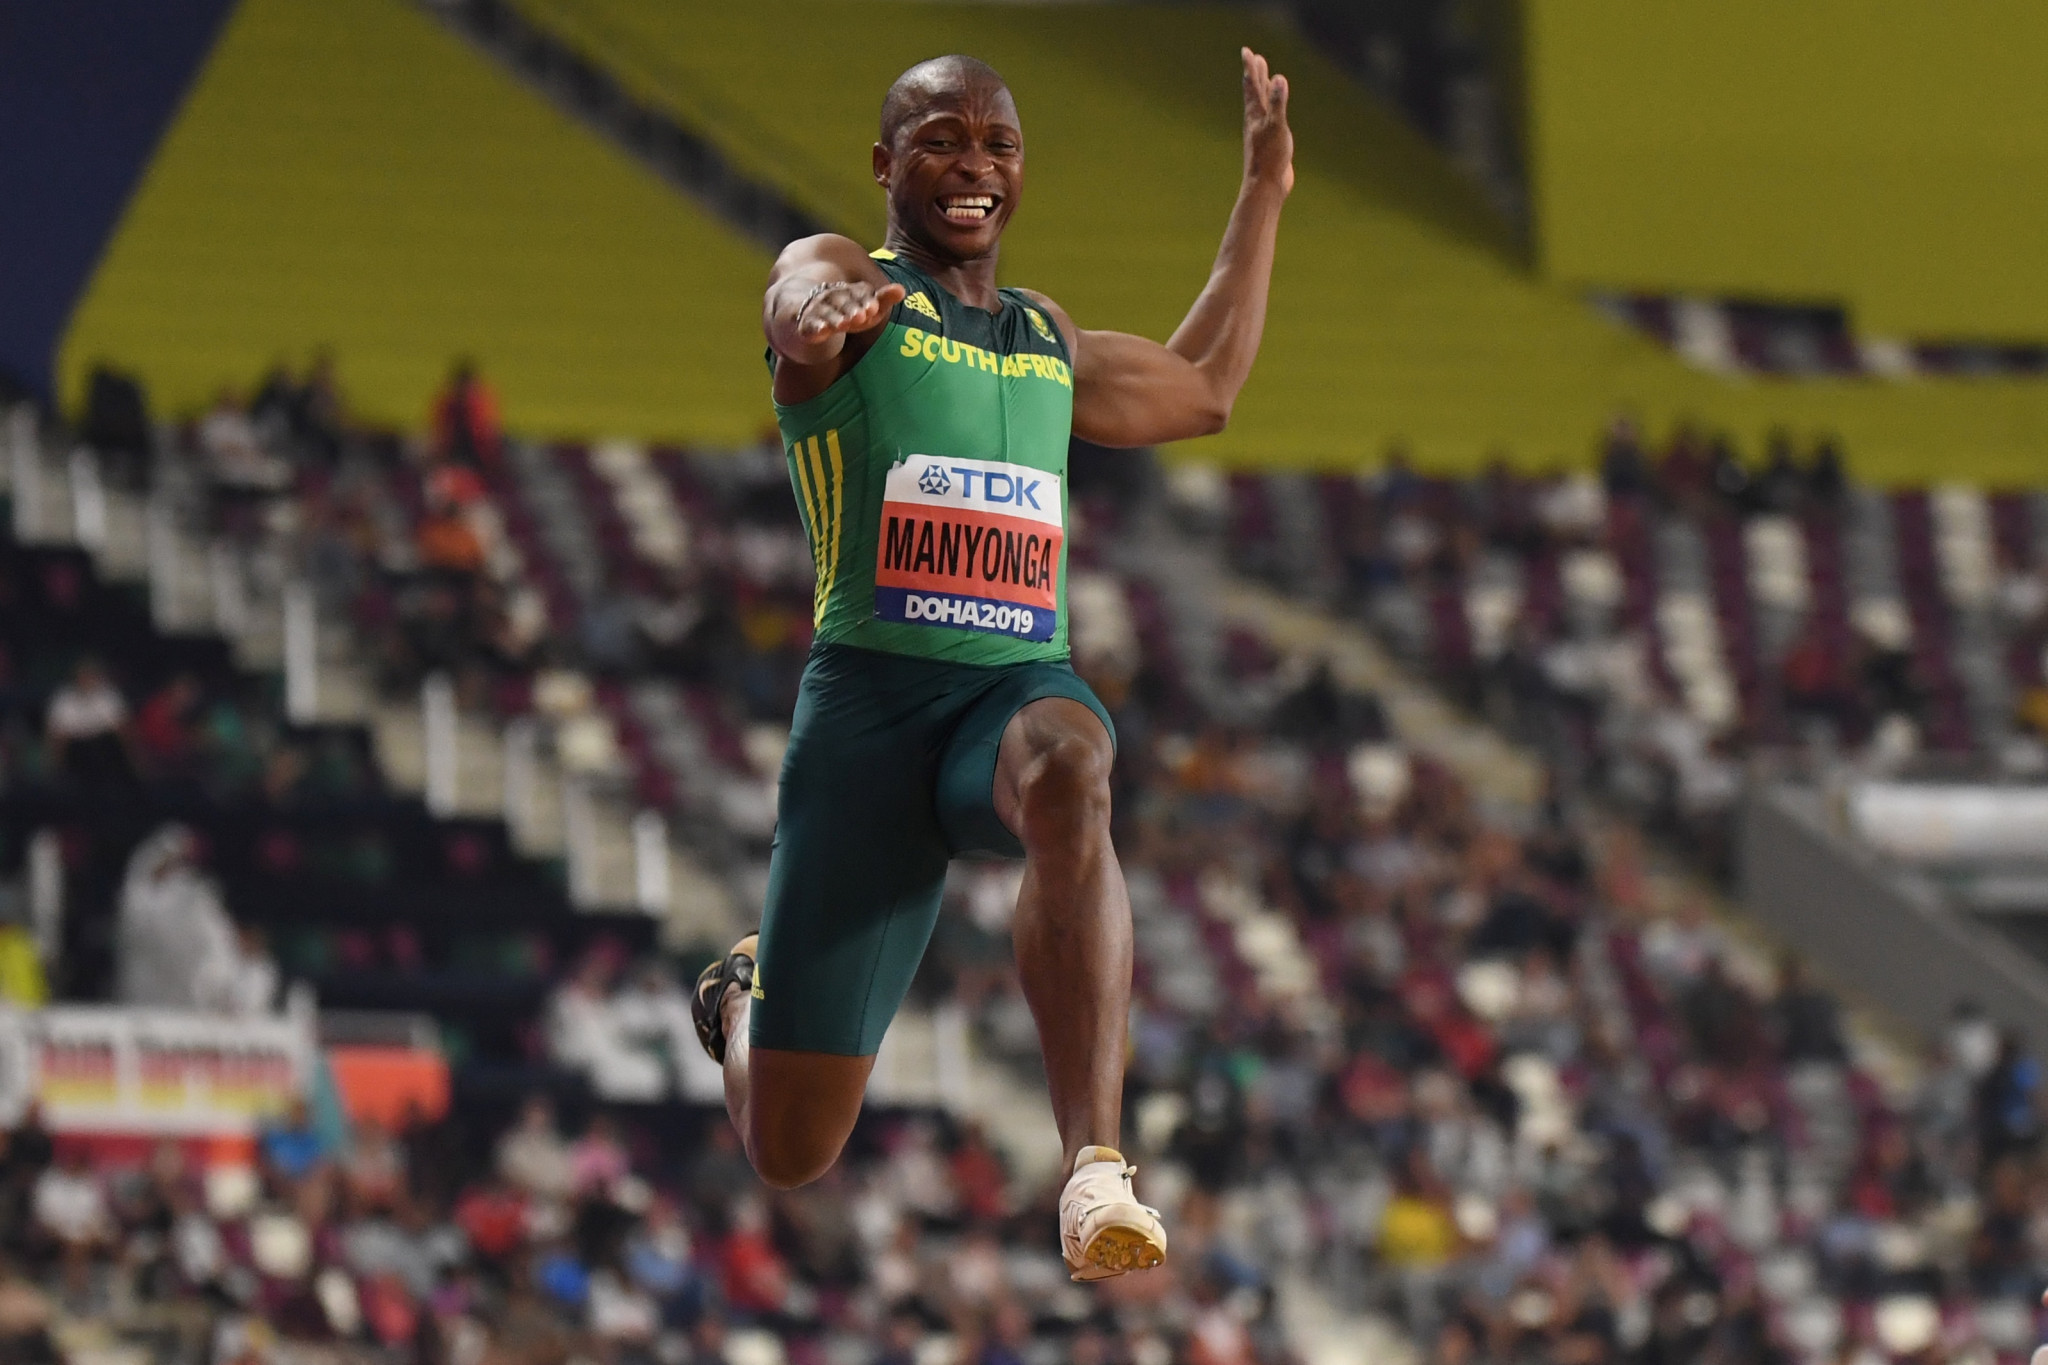 South African Olympic long jump silver medallist provisionally suspended for whereabouts failure